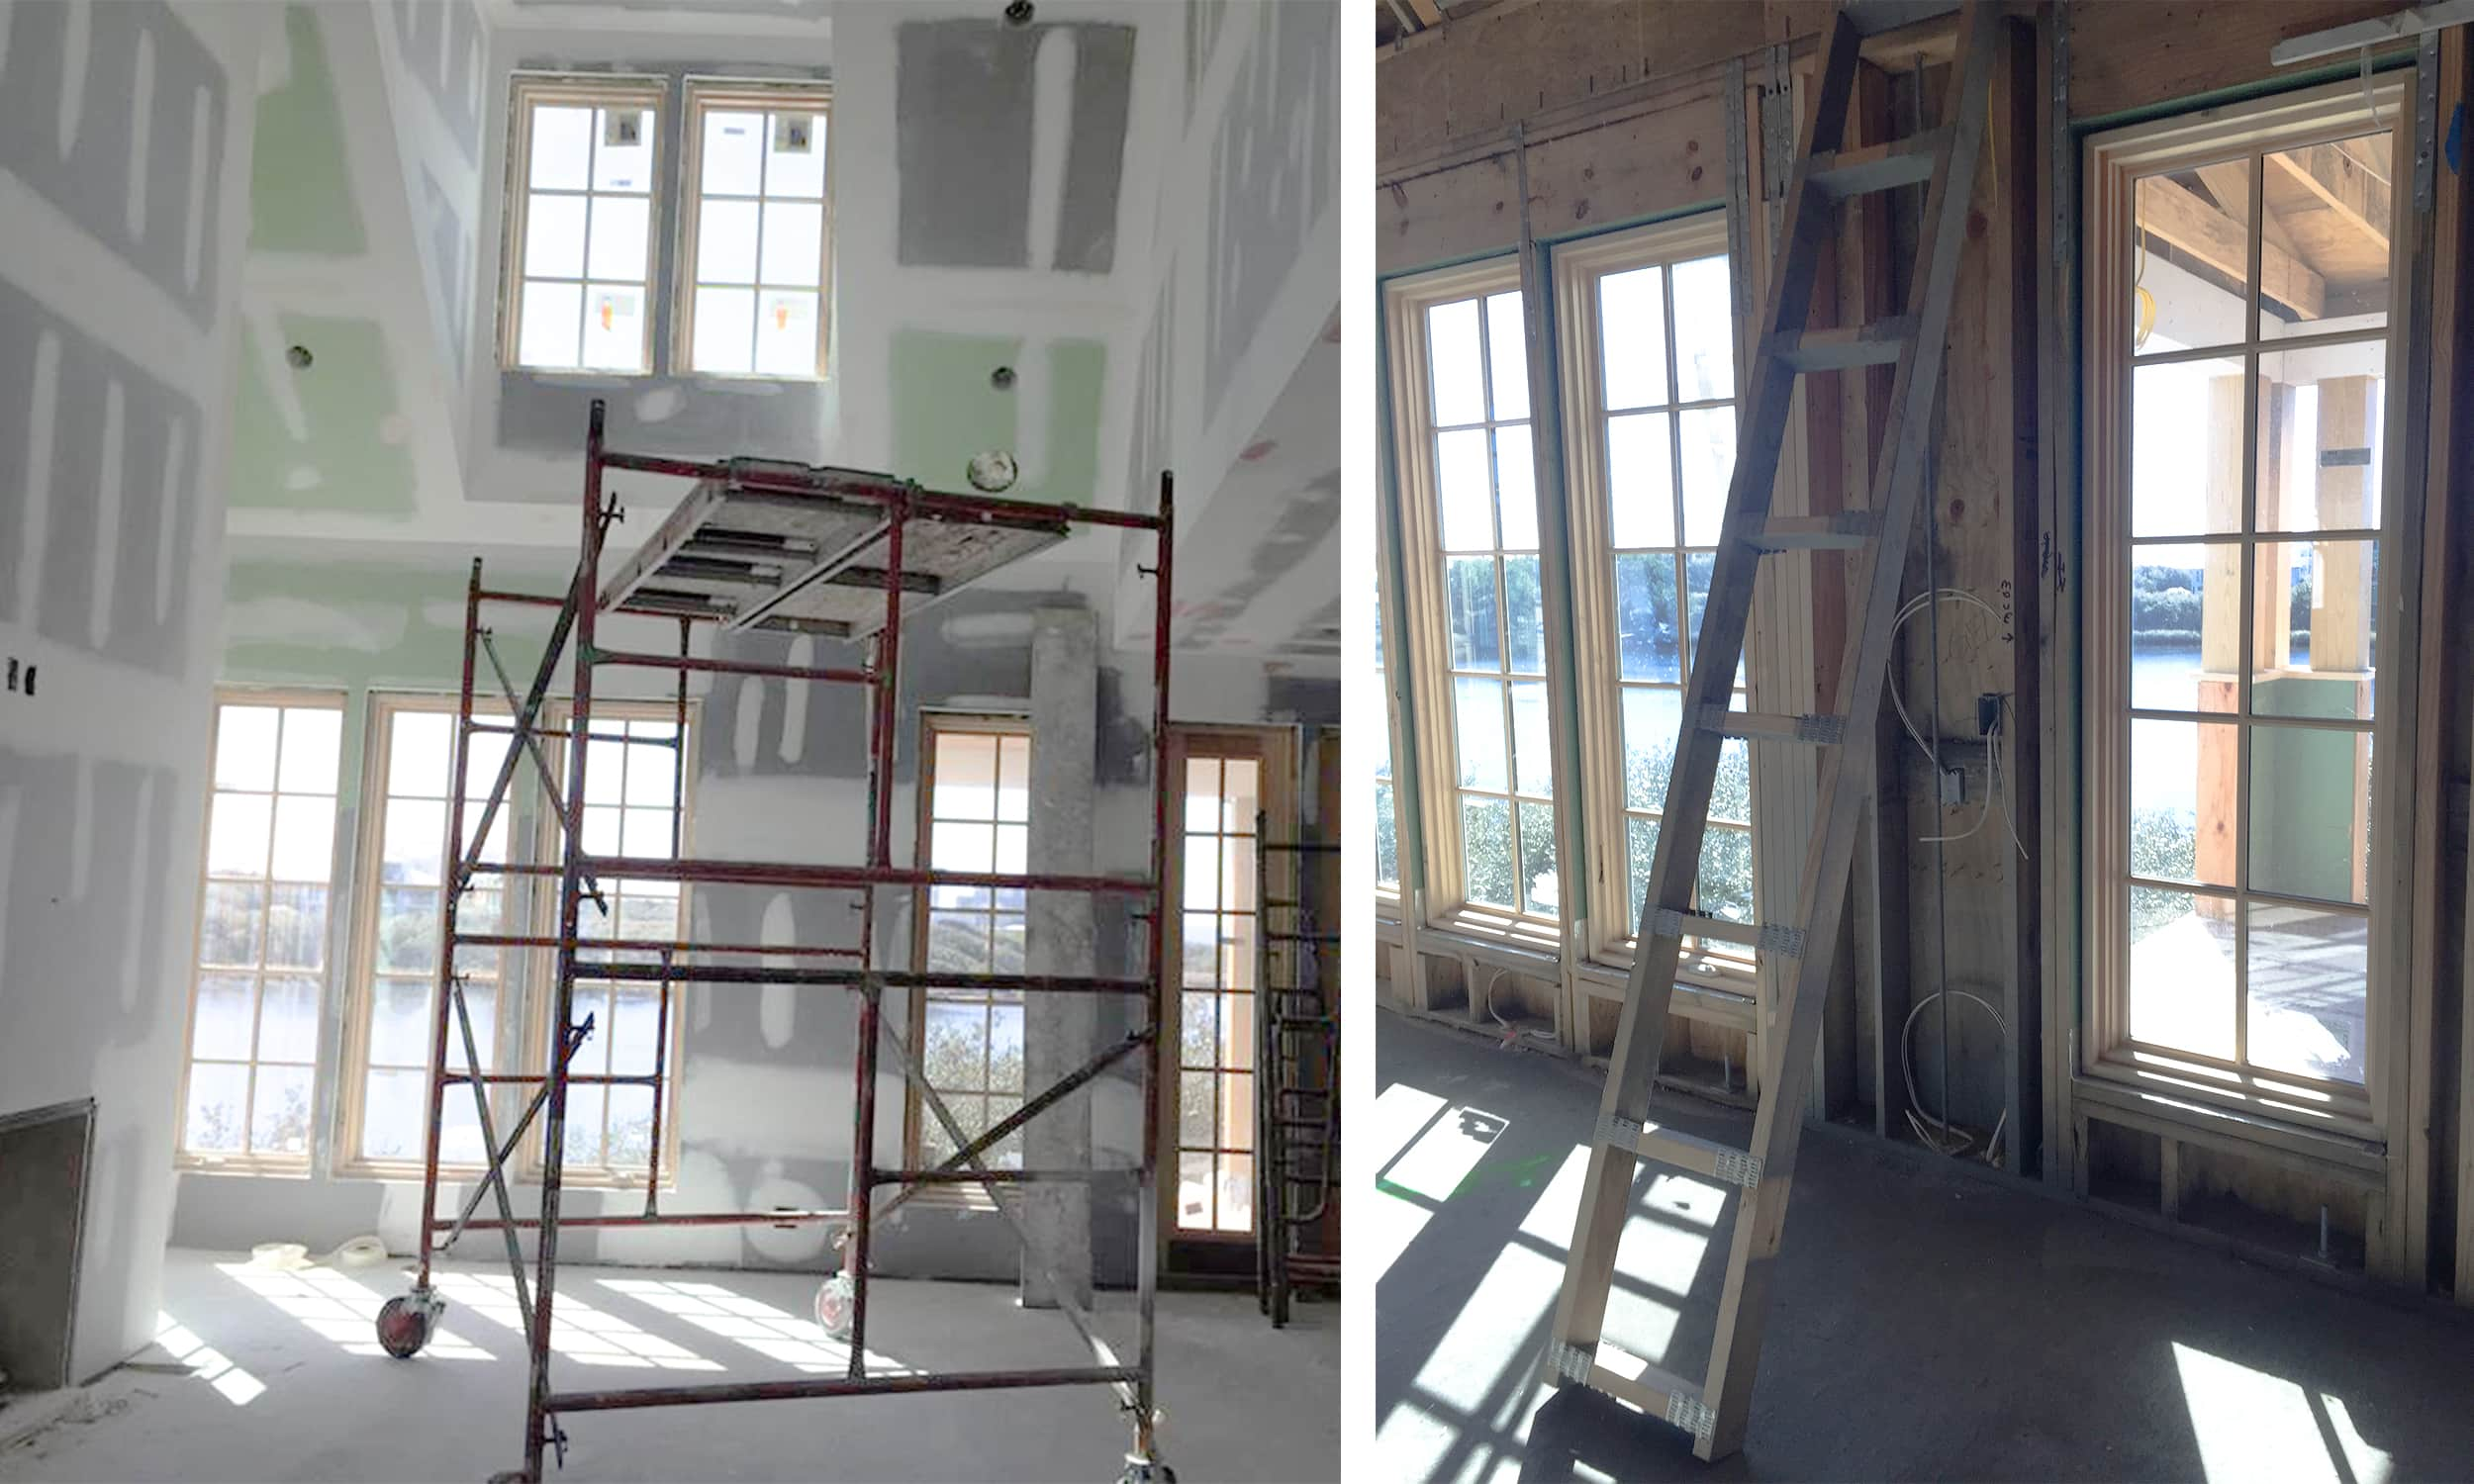 work in progress at the watersound beach living room - the drywall goes up - darci hether new york